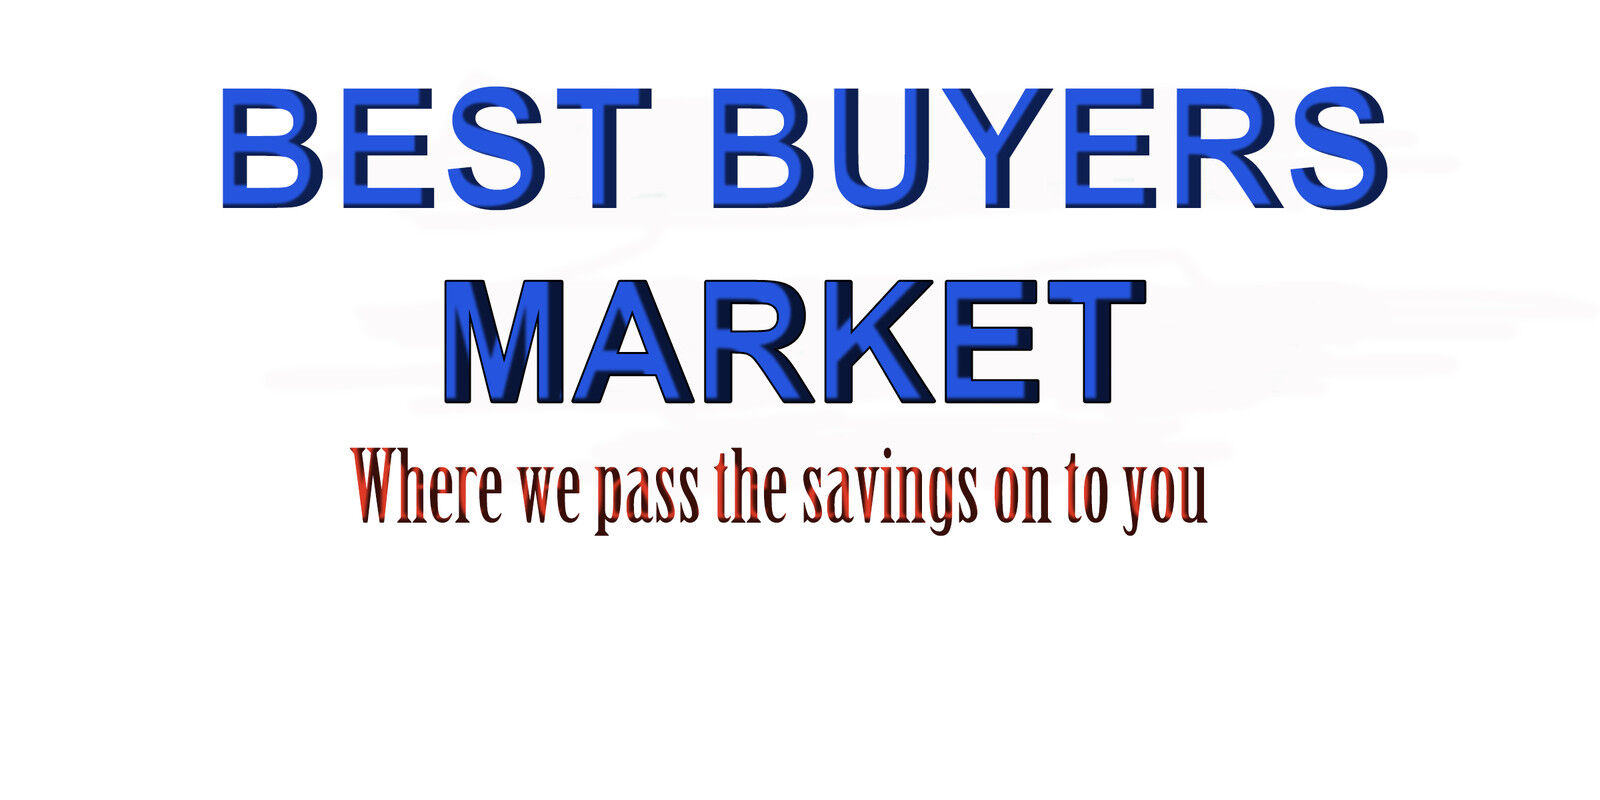 Best Buyers Market